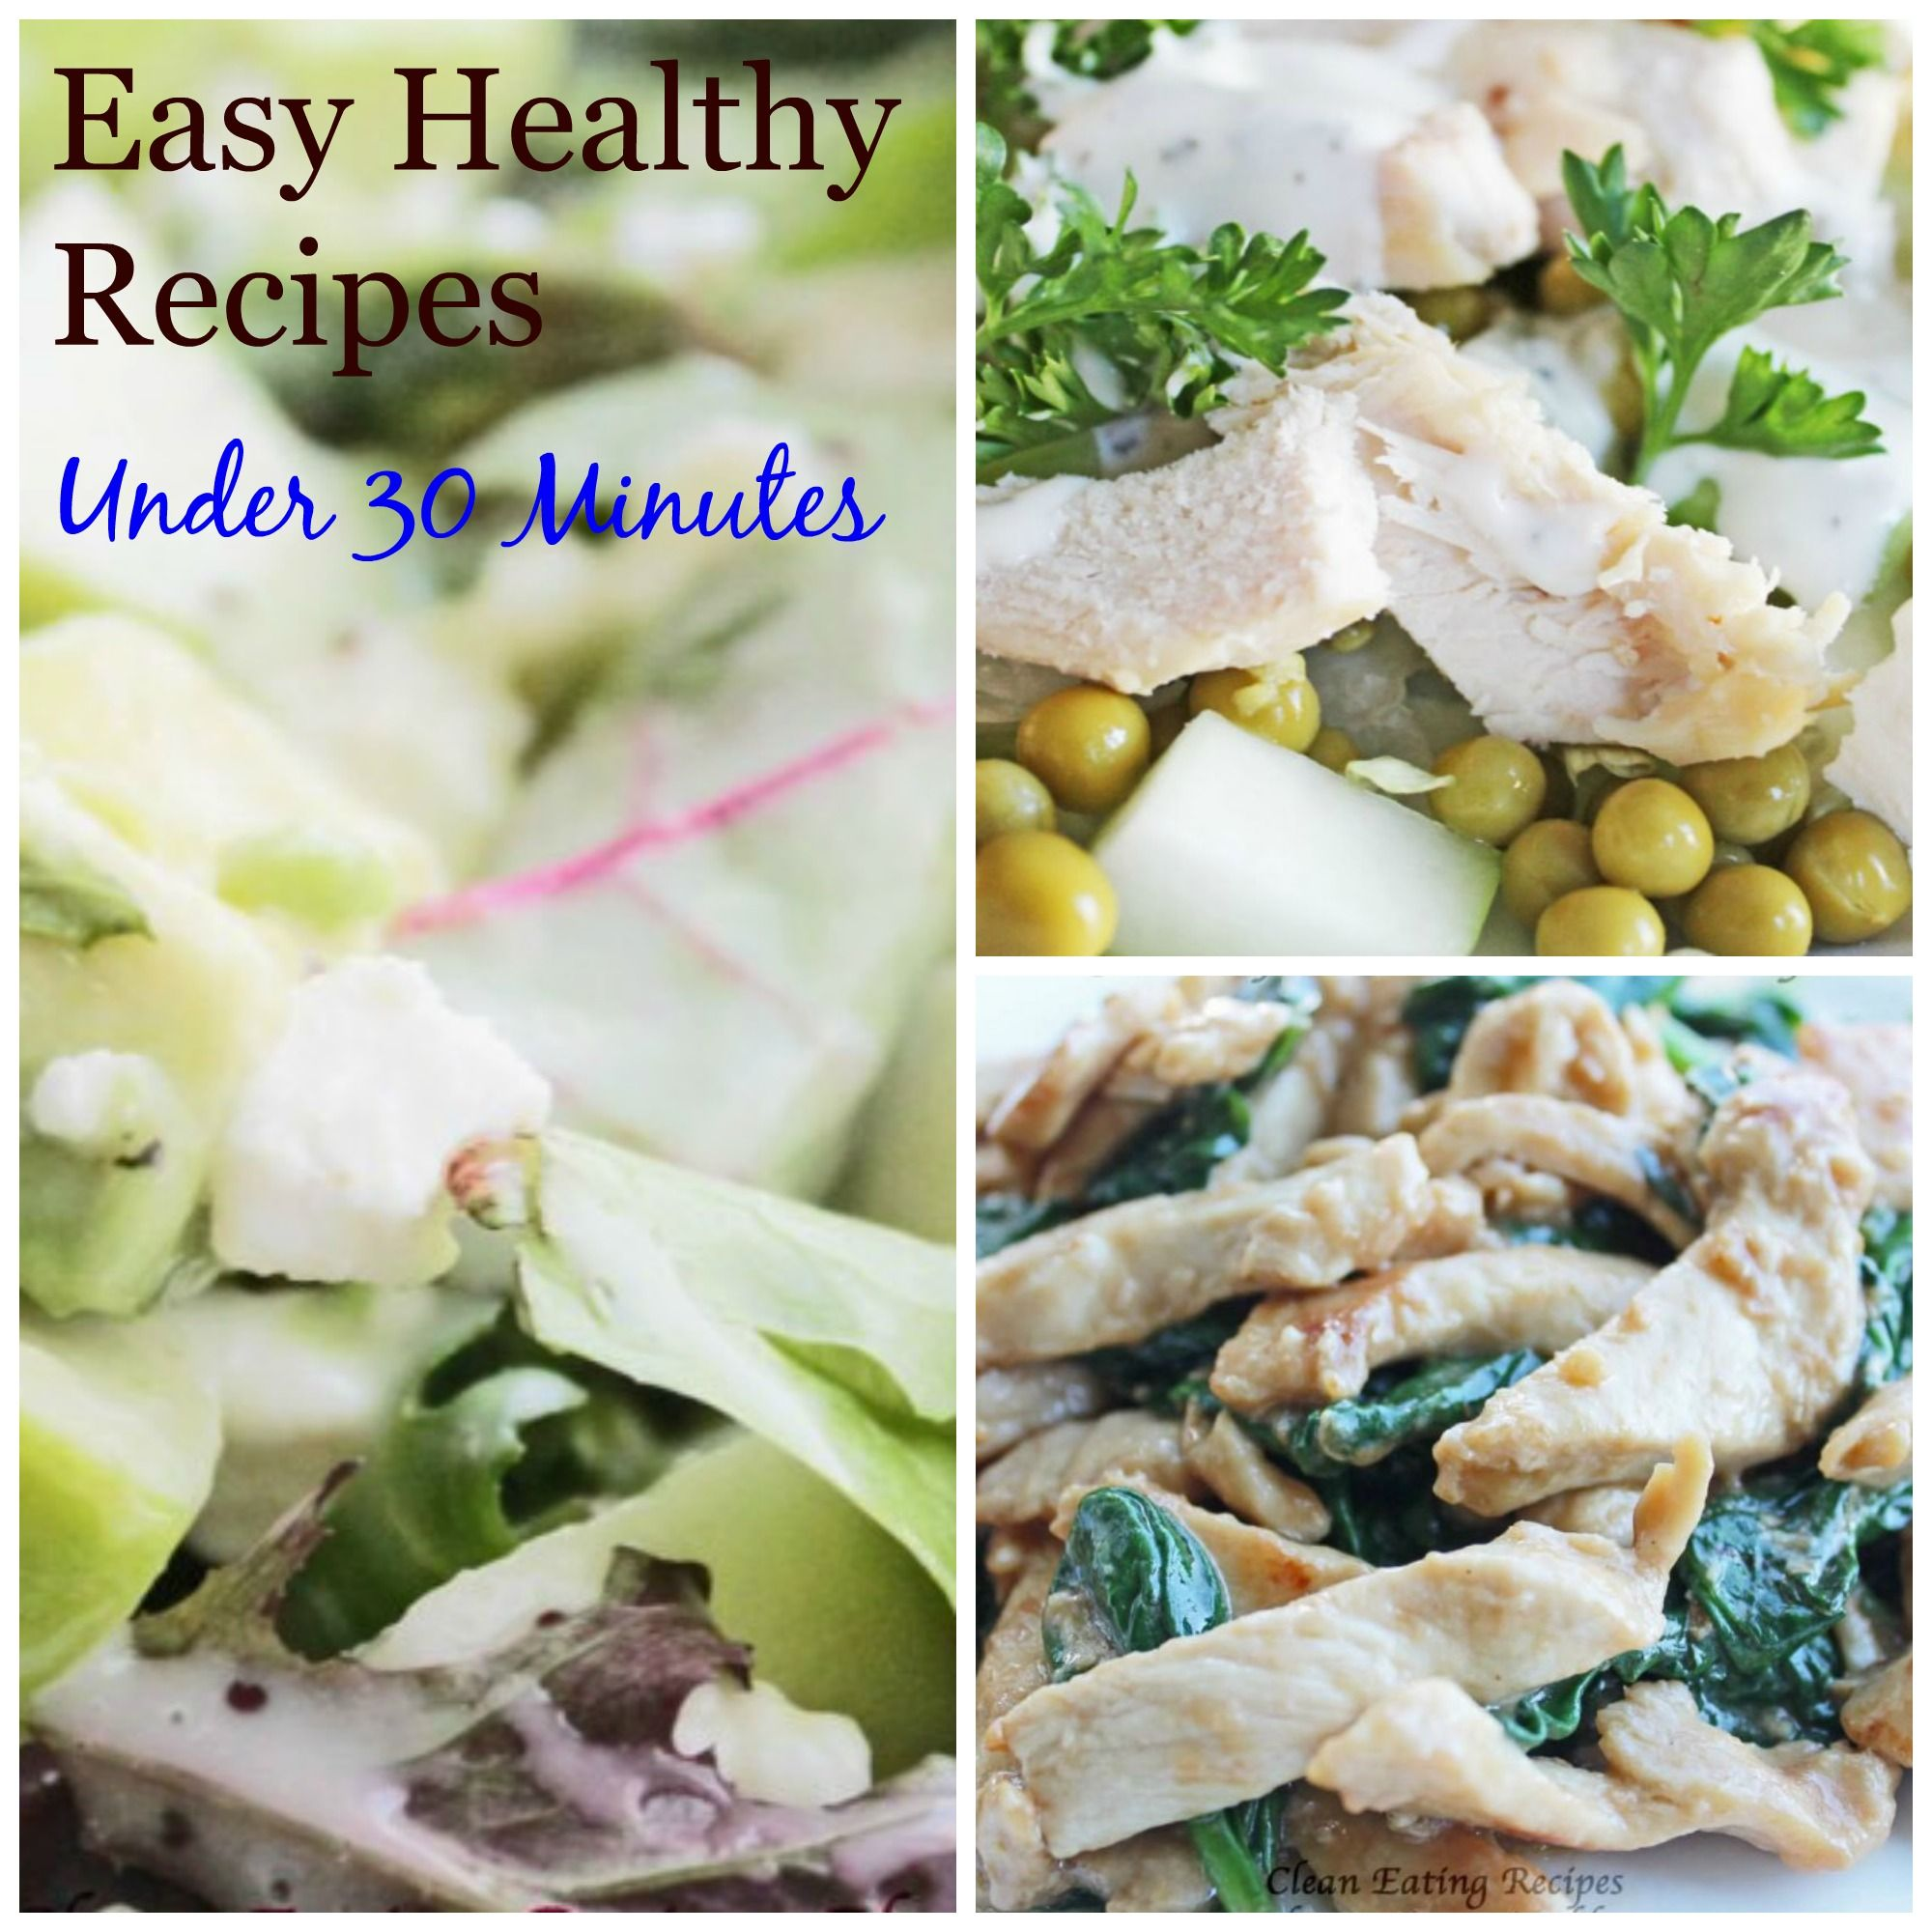 Simple healthy dinner recipes for under 30 minutes - easy healthy recipes for clean eating diet | Enjoy! | #cleaneating #diet #healthyeating #weightlosshelp